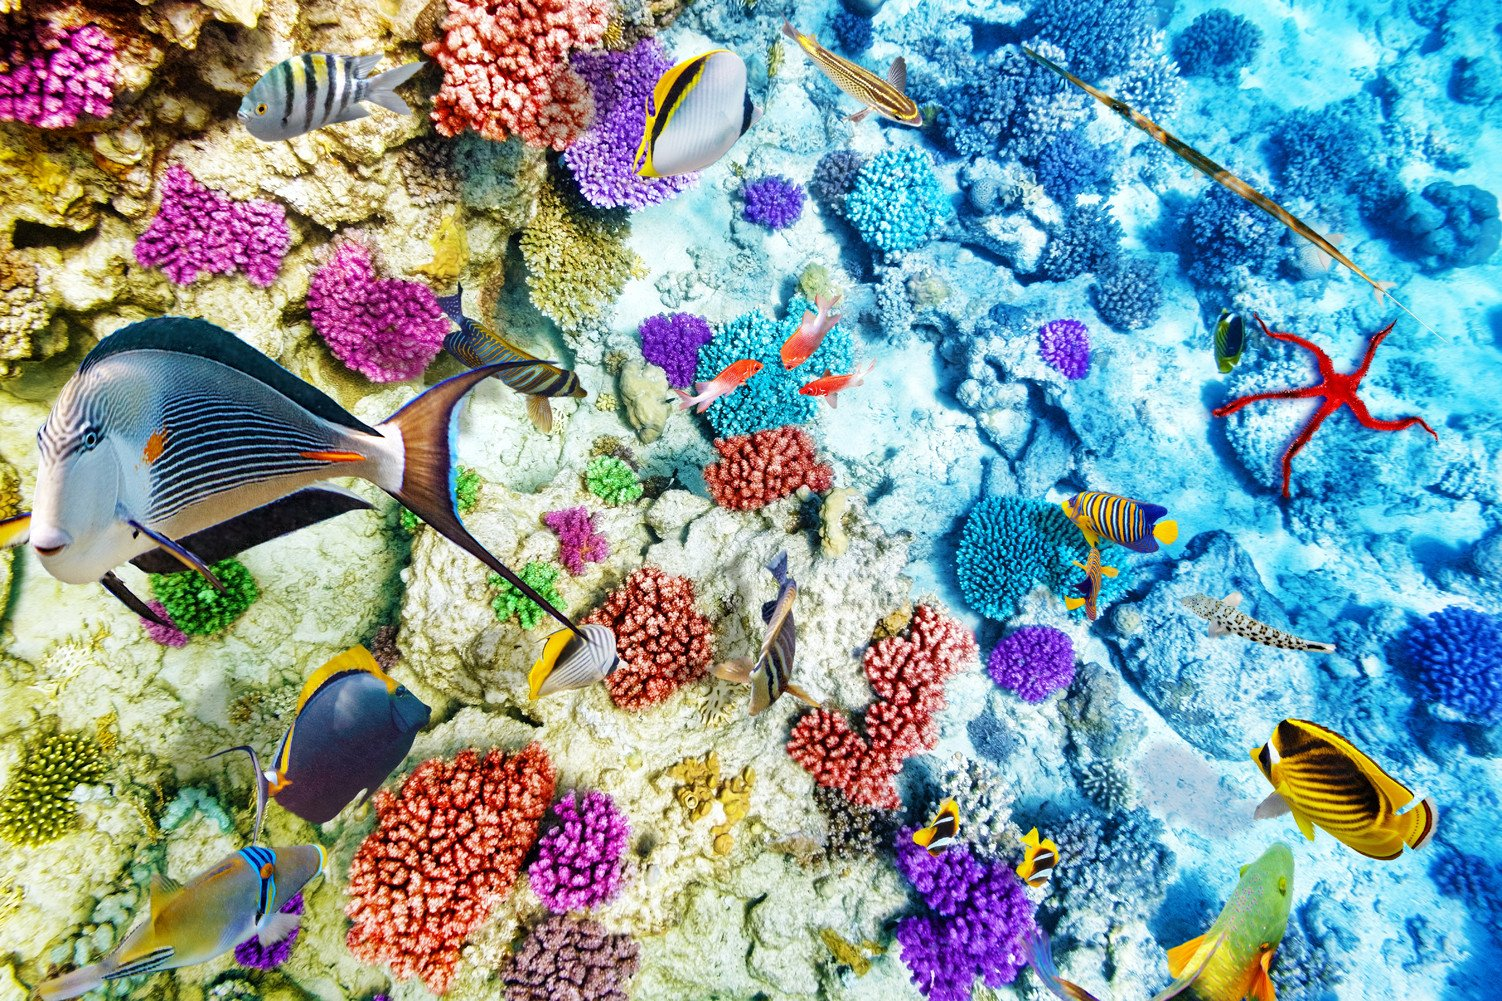 CHOIS Custom Film CF3050 Animal Fishes Colorful Corals Glass Window DIY Frosted 4' W by 3' H